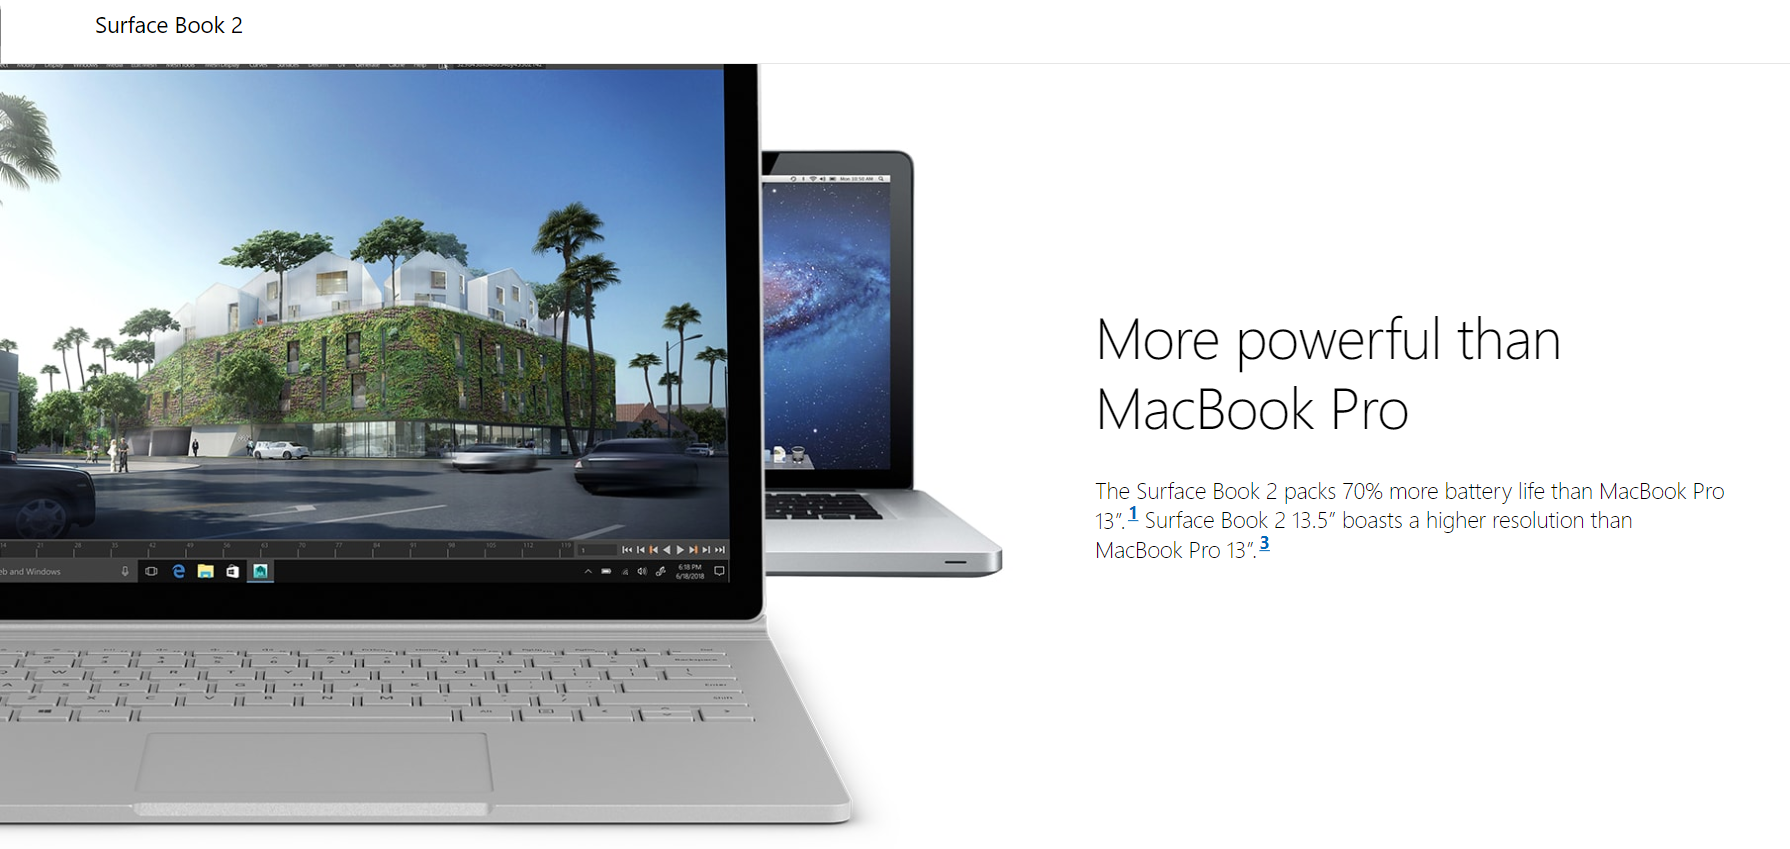 Microsoft Surface Book 2 - Laptops with Long Battery Life